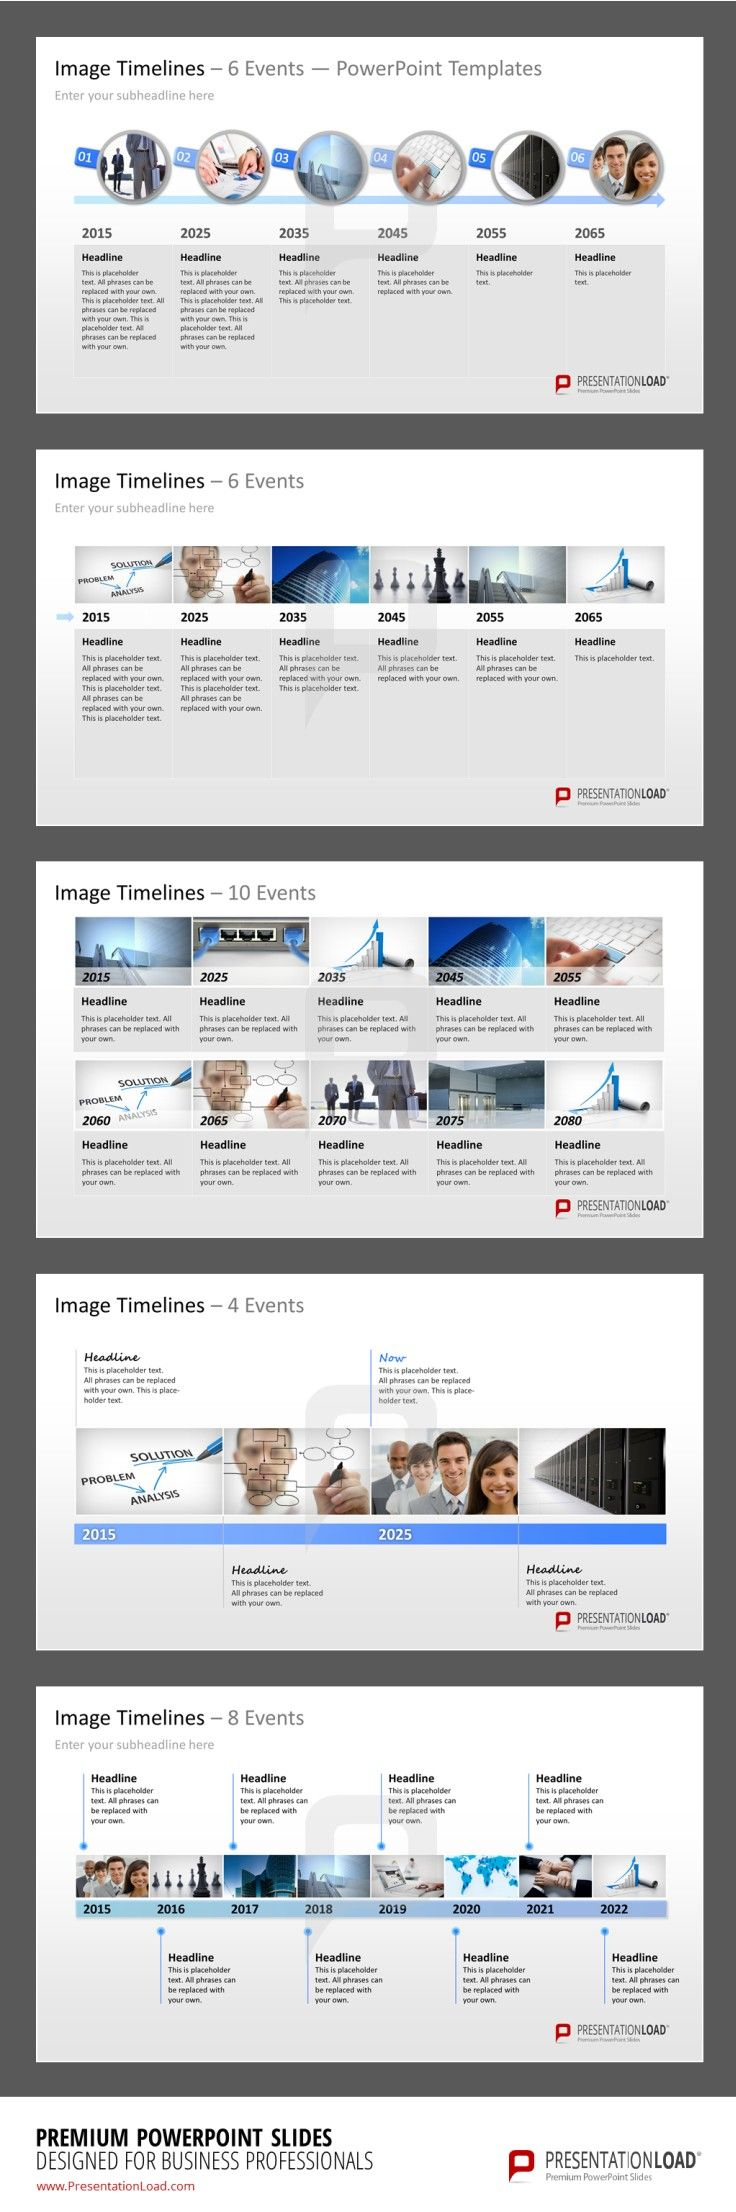 Image Timeline PowerPoint Template #presentationload http://www.presentationload.com/powerpoint-image-timelines.html